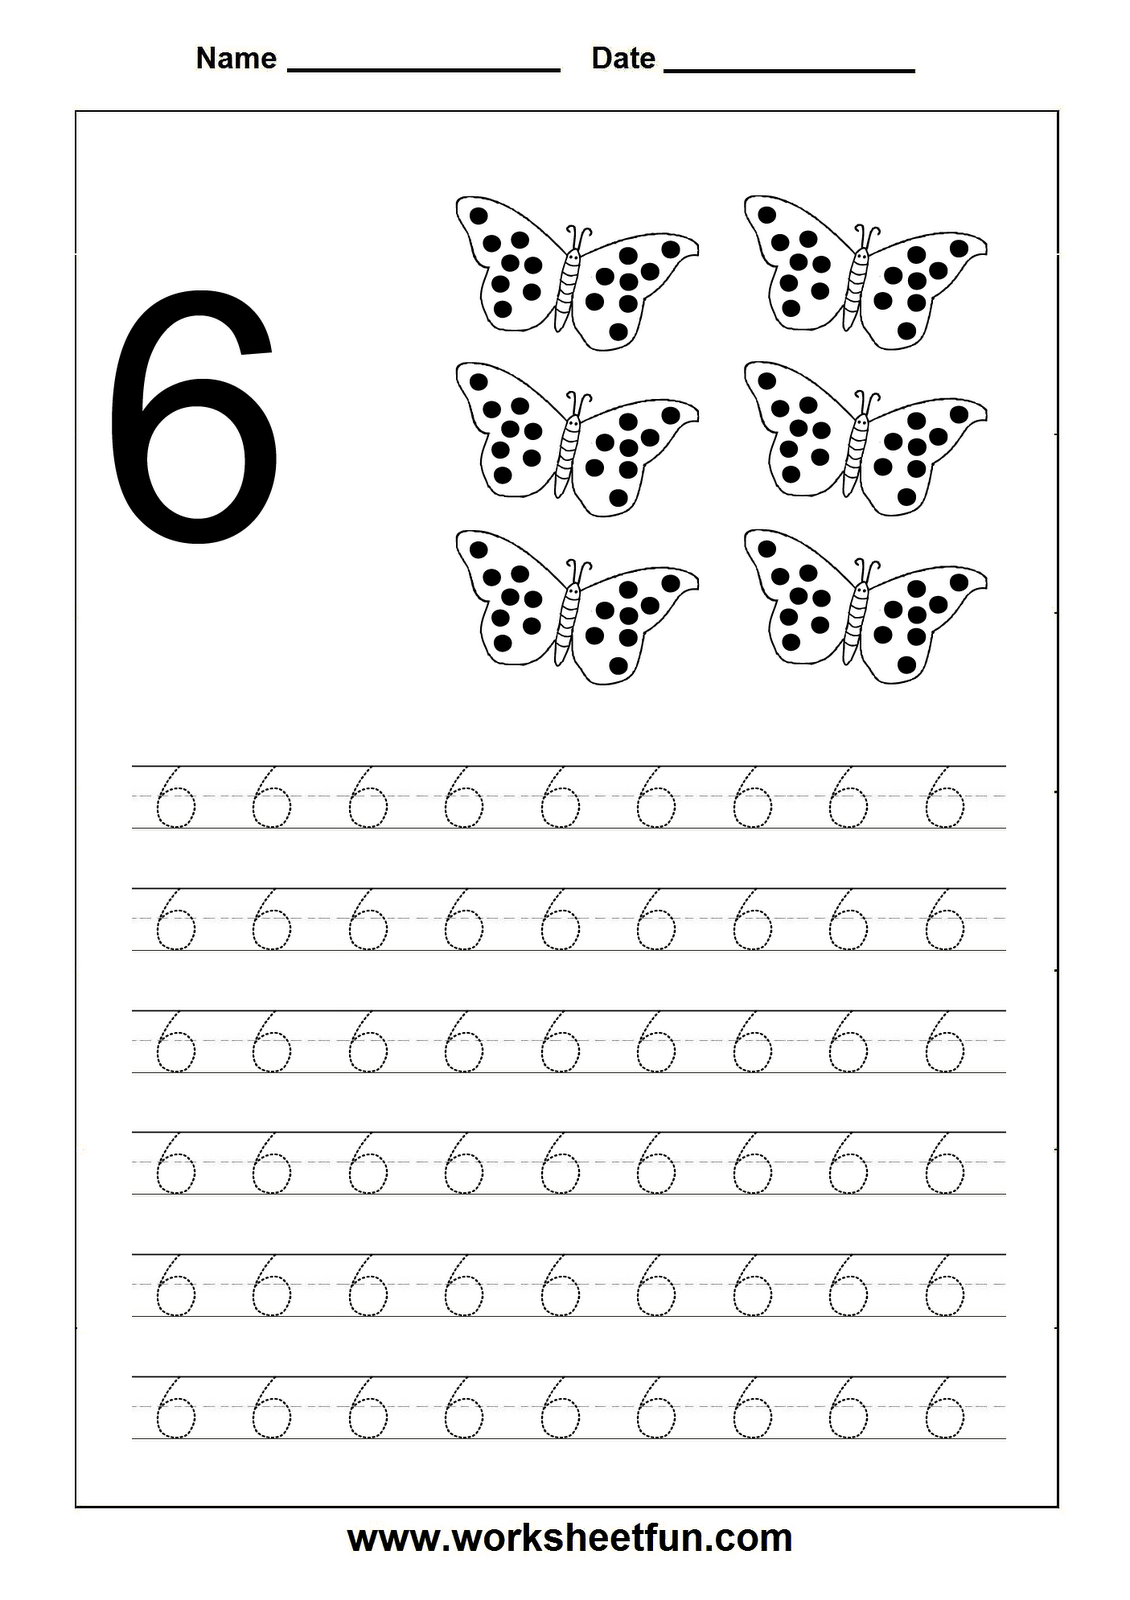 Homeschooling: Number Tracing on Pinterest | Worksheets ...